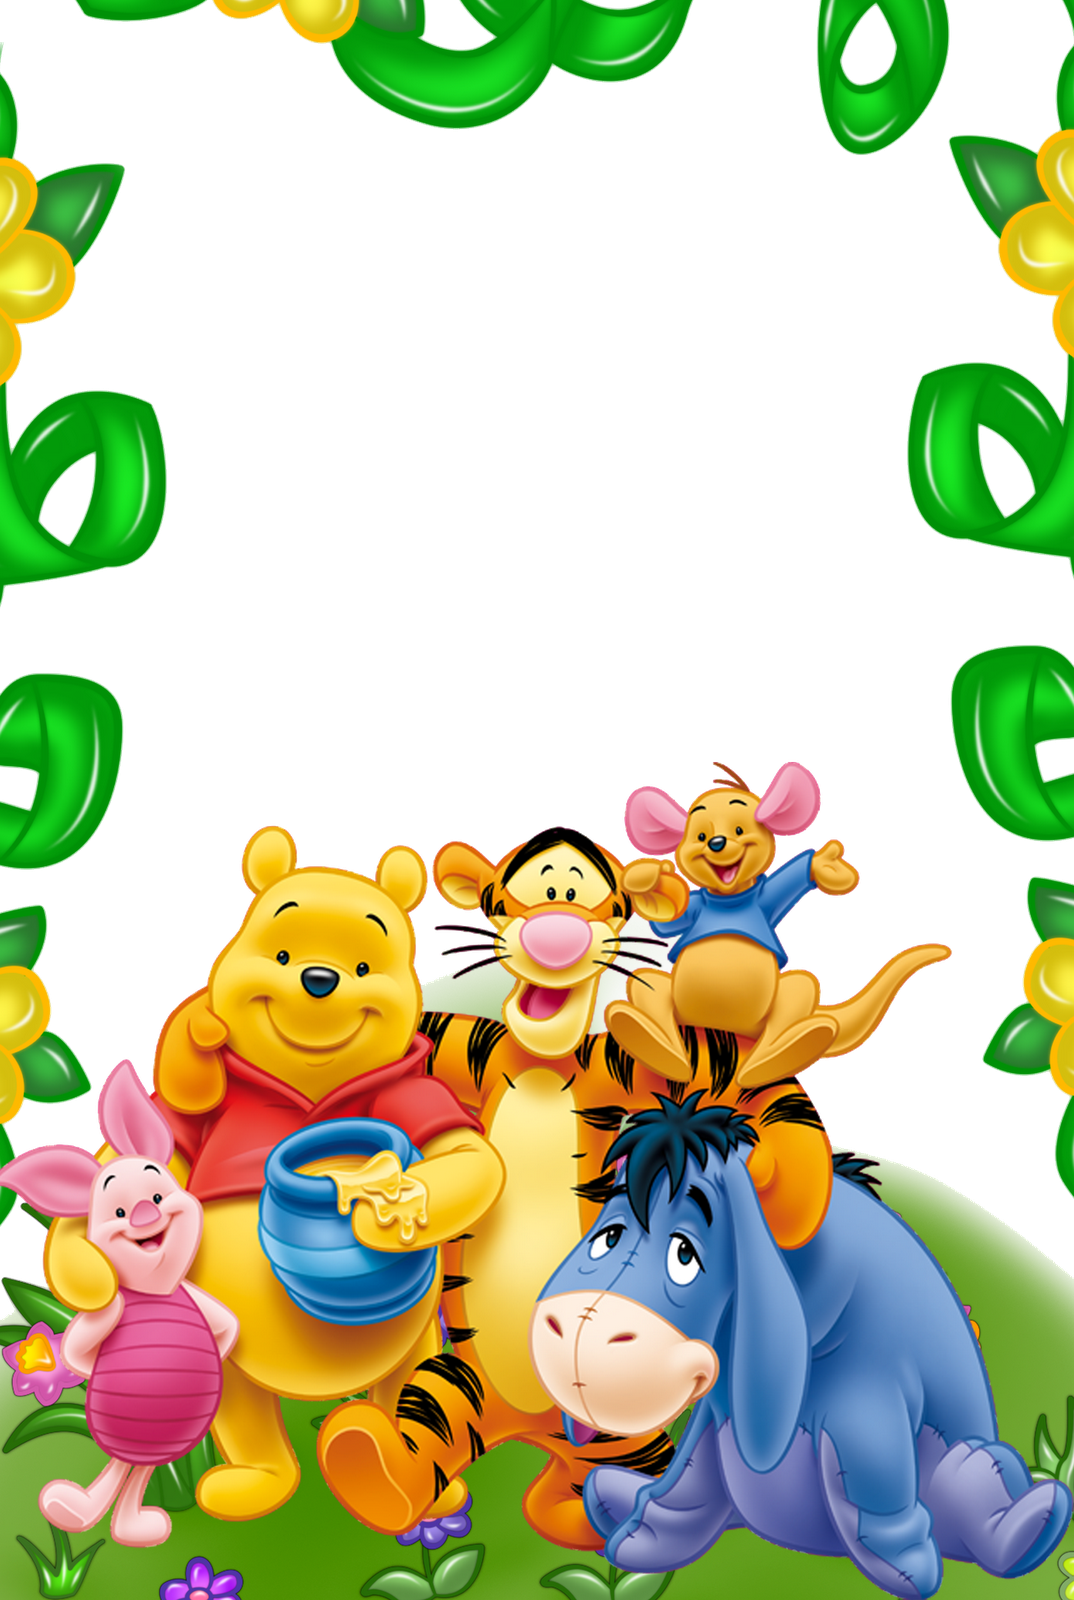 Winnie the Pooh and Friends Kids Transparent Frame.